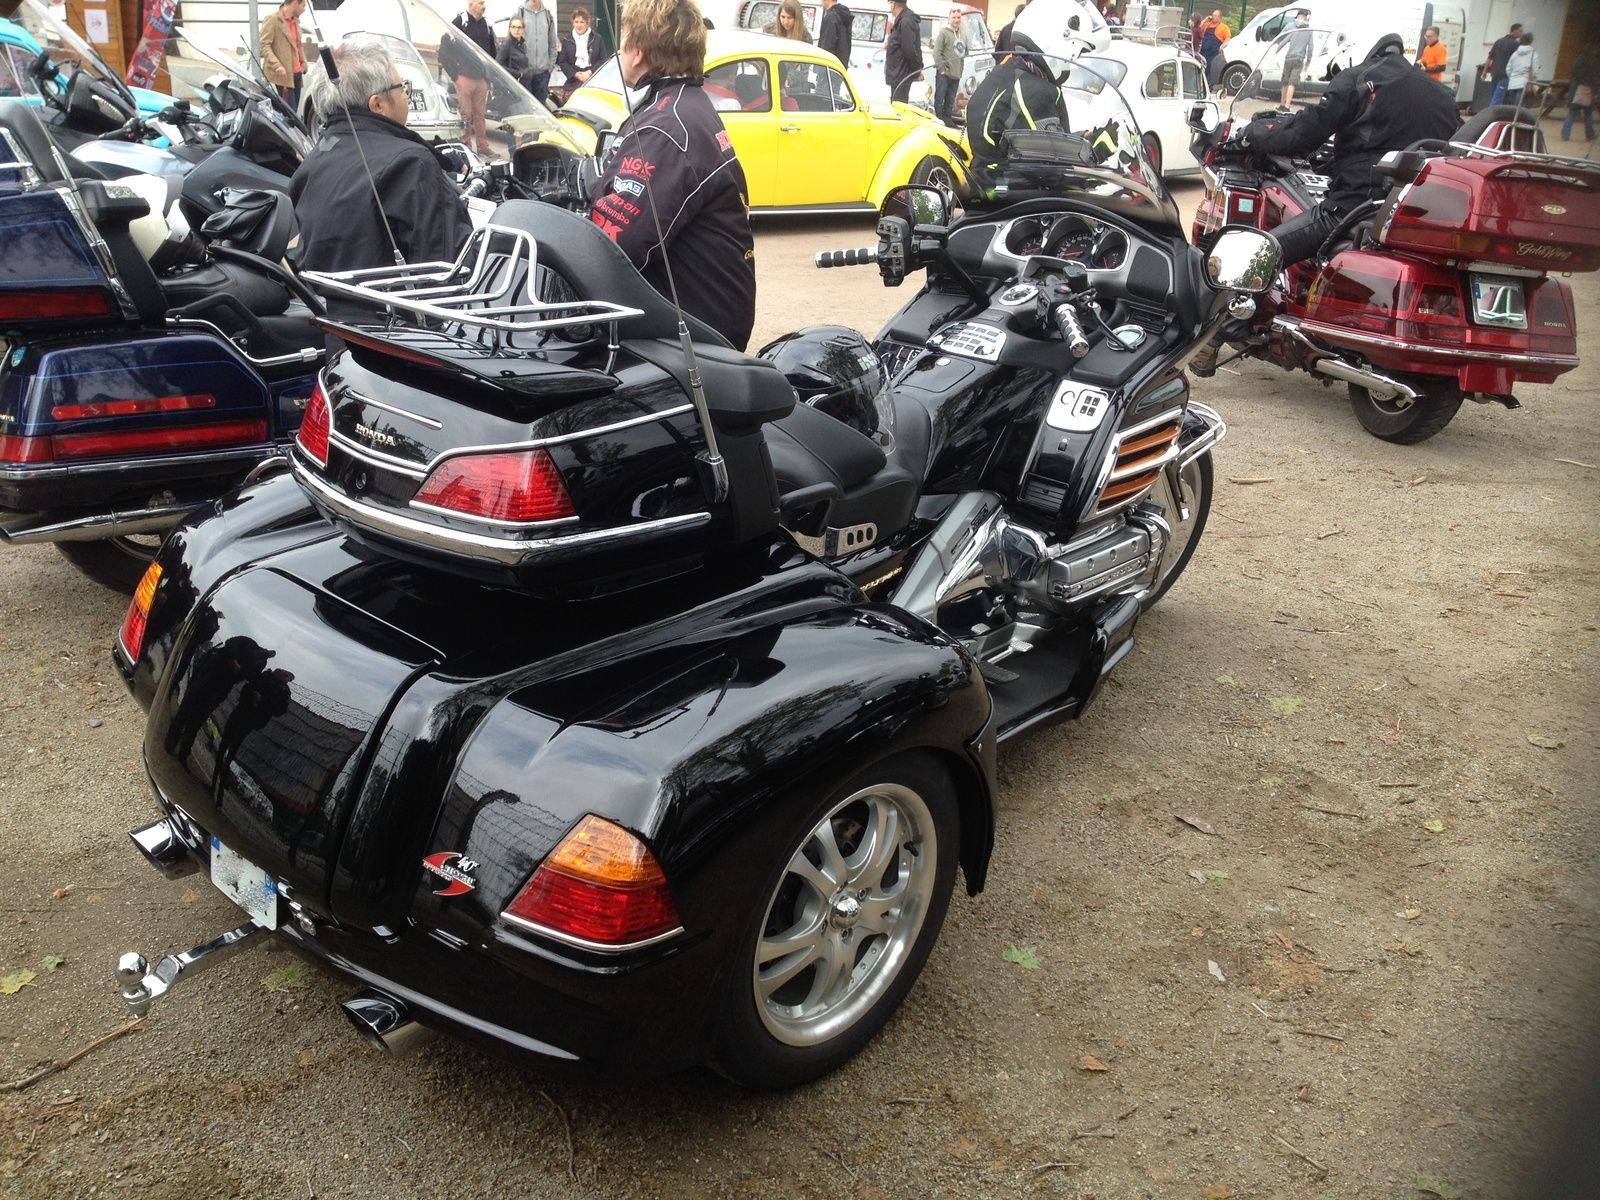 goldwing unsersbande concentre cox molsheim 2016 le blog de unser 39 s bande de bikers du 67. Black Bedroom Furniture Sets. Home Design Ideas